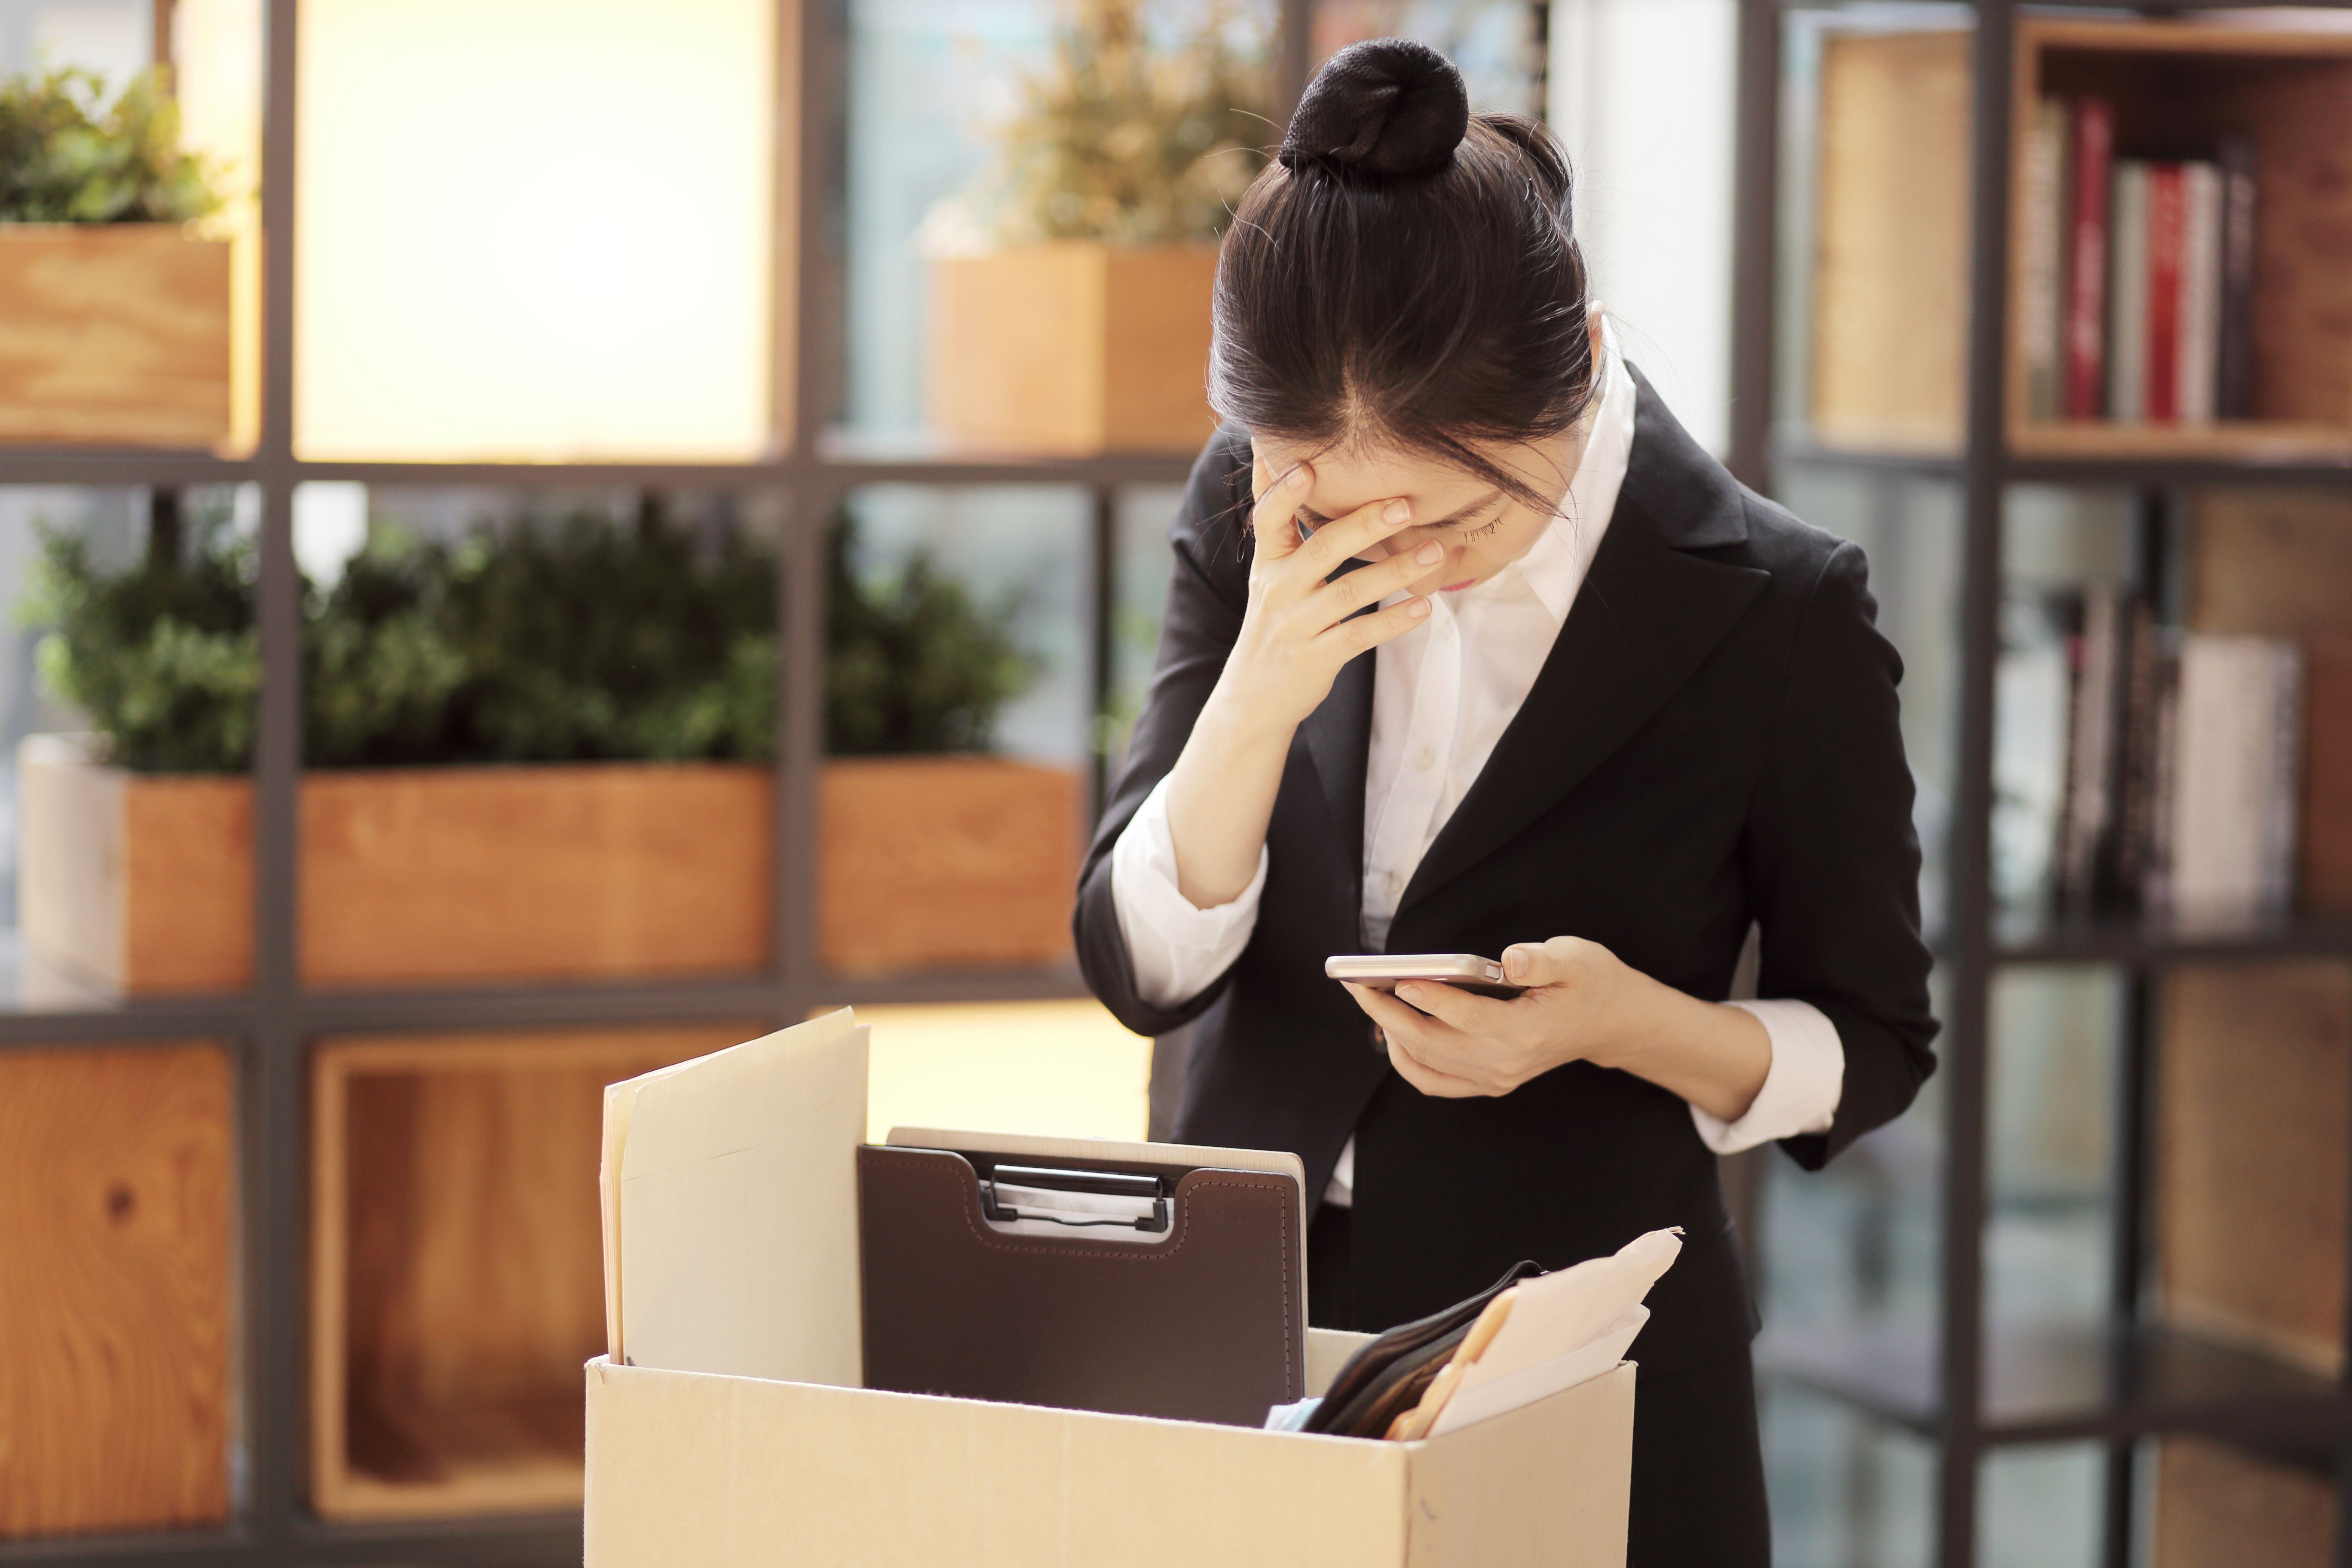 When You Can Sue An Employer For Wrongful Termination